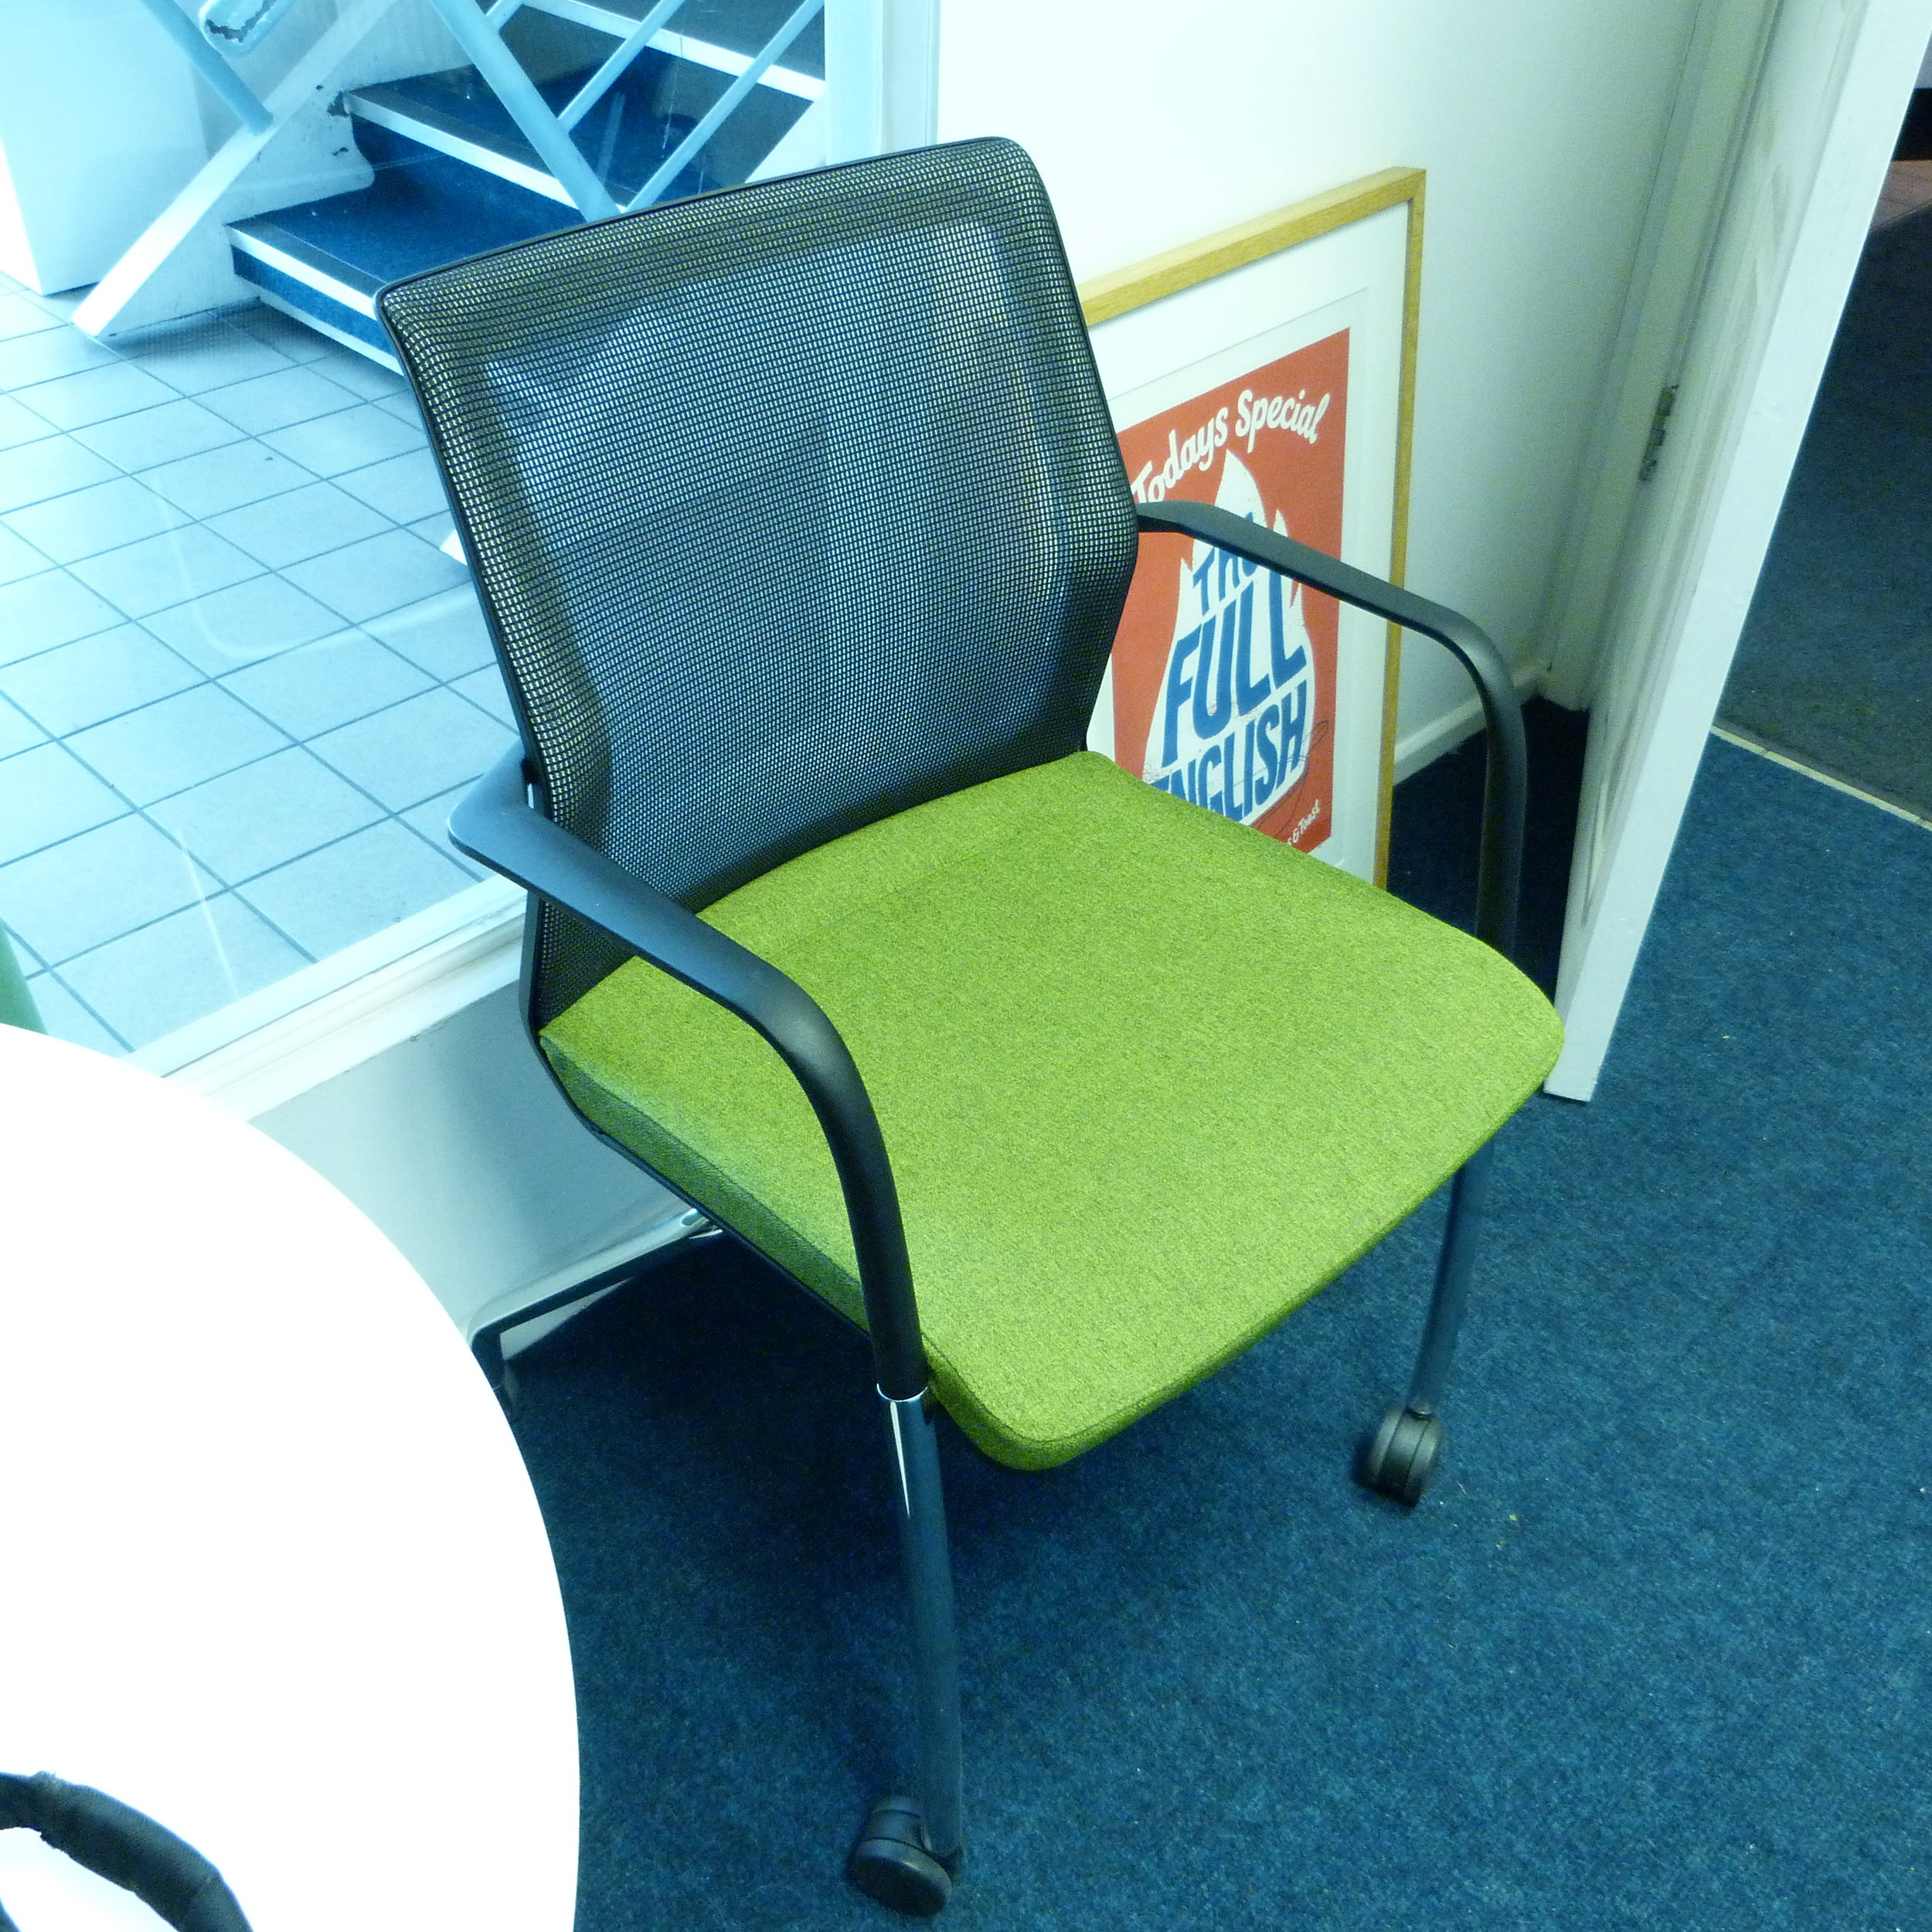 These Orangebox Workday meeting chairs have made it in to our office…lucky us!